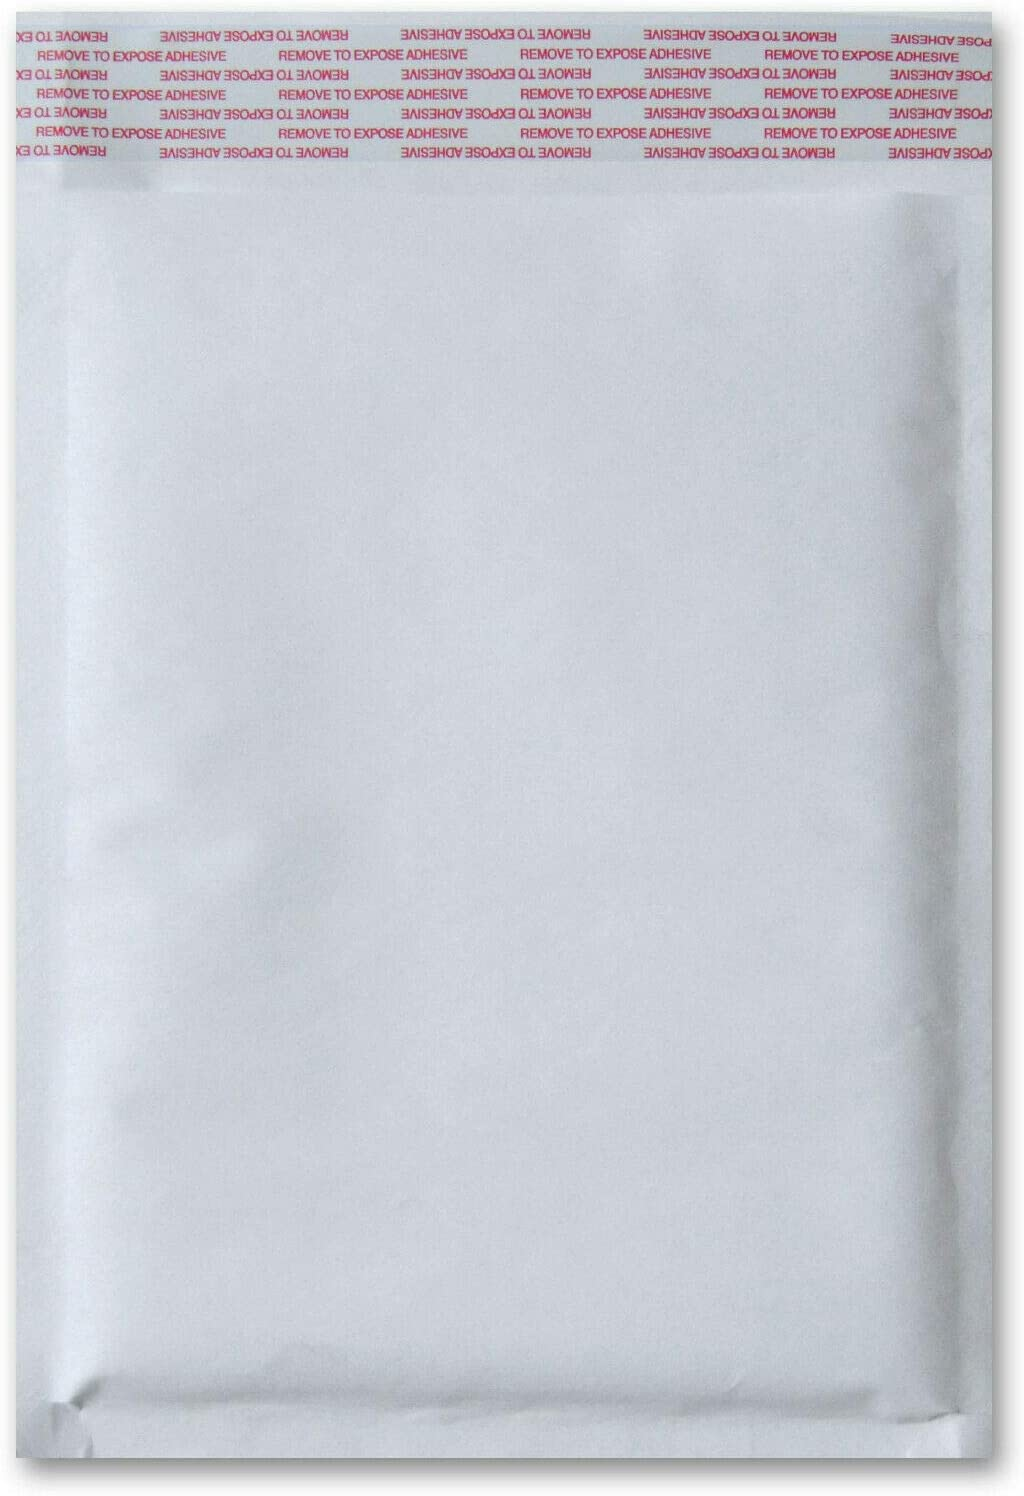 20 Count Lot   Branded Padded Airjacket Mailer Envelopes 6.5 x 8.7 FREE SHIP